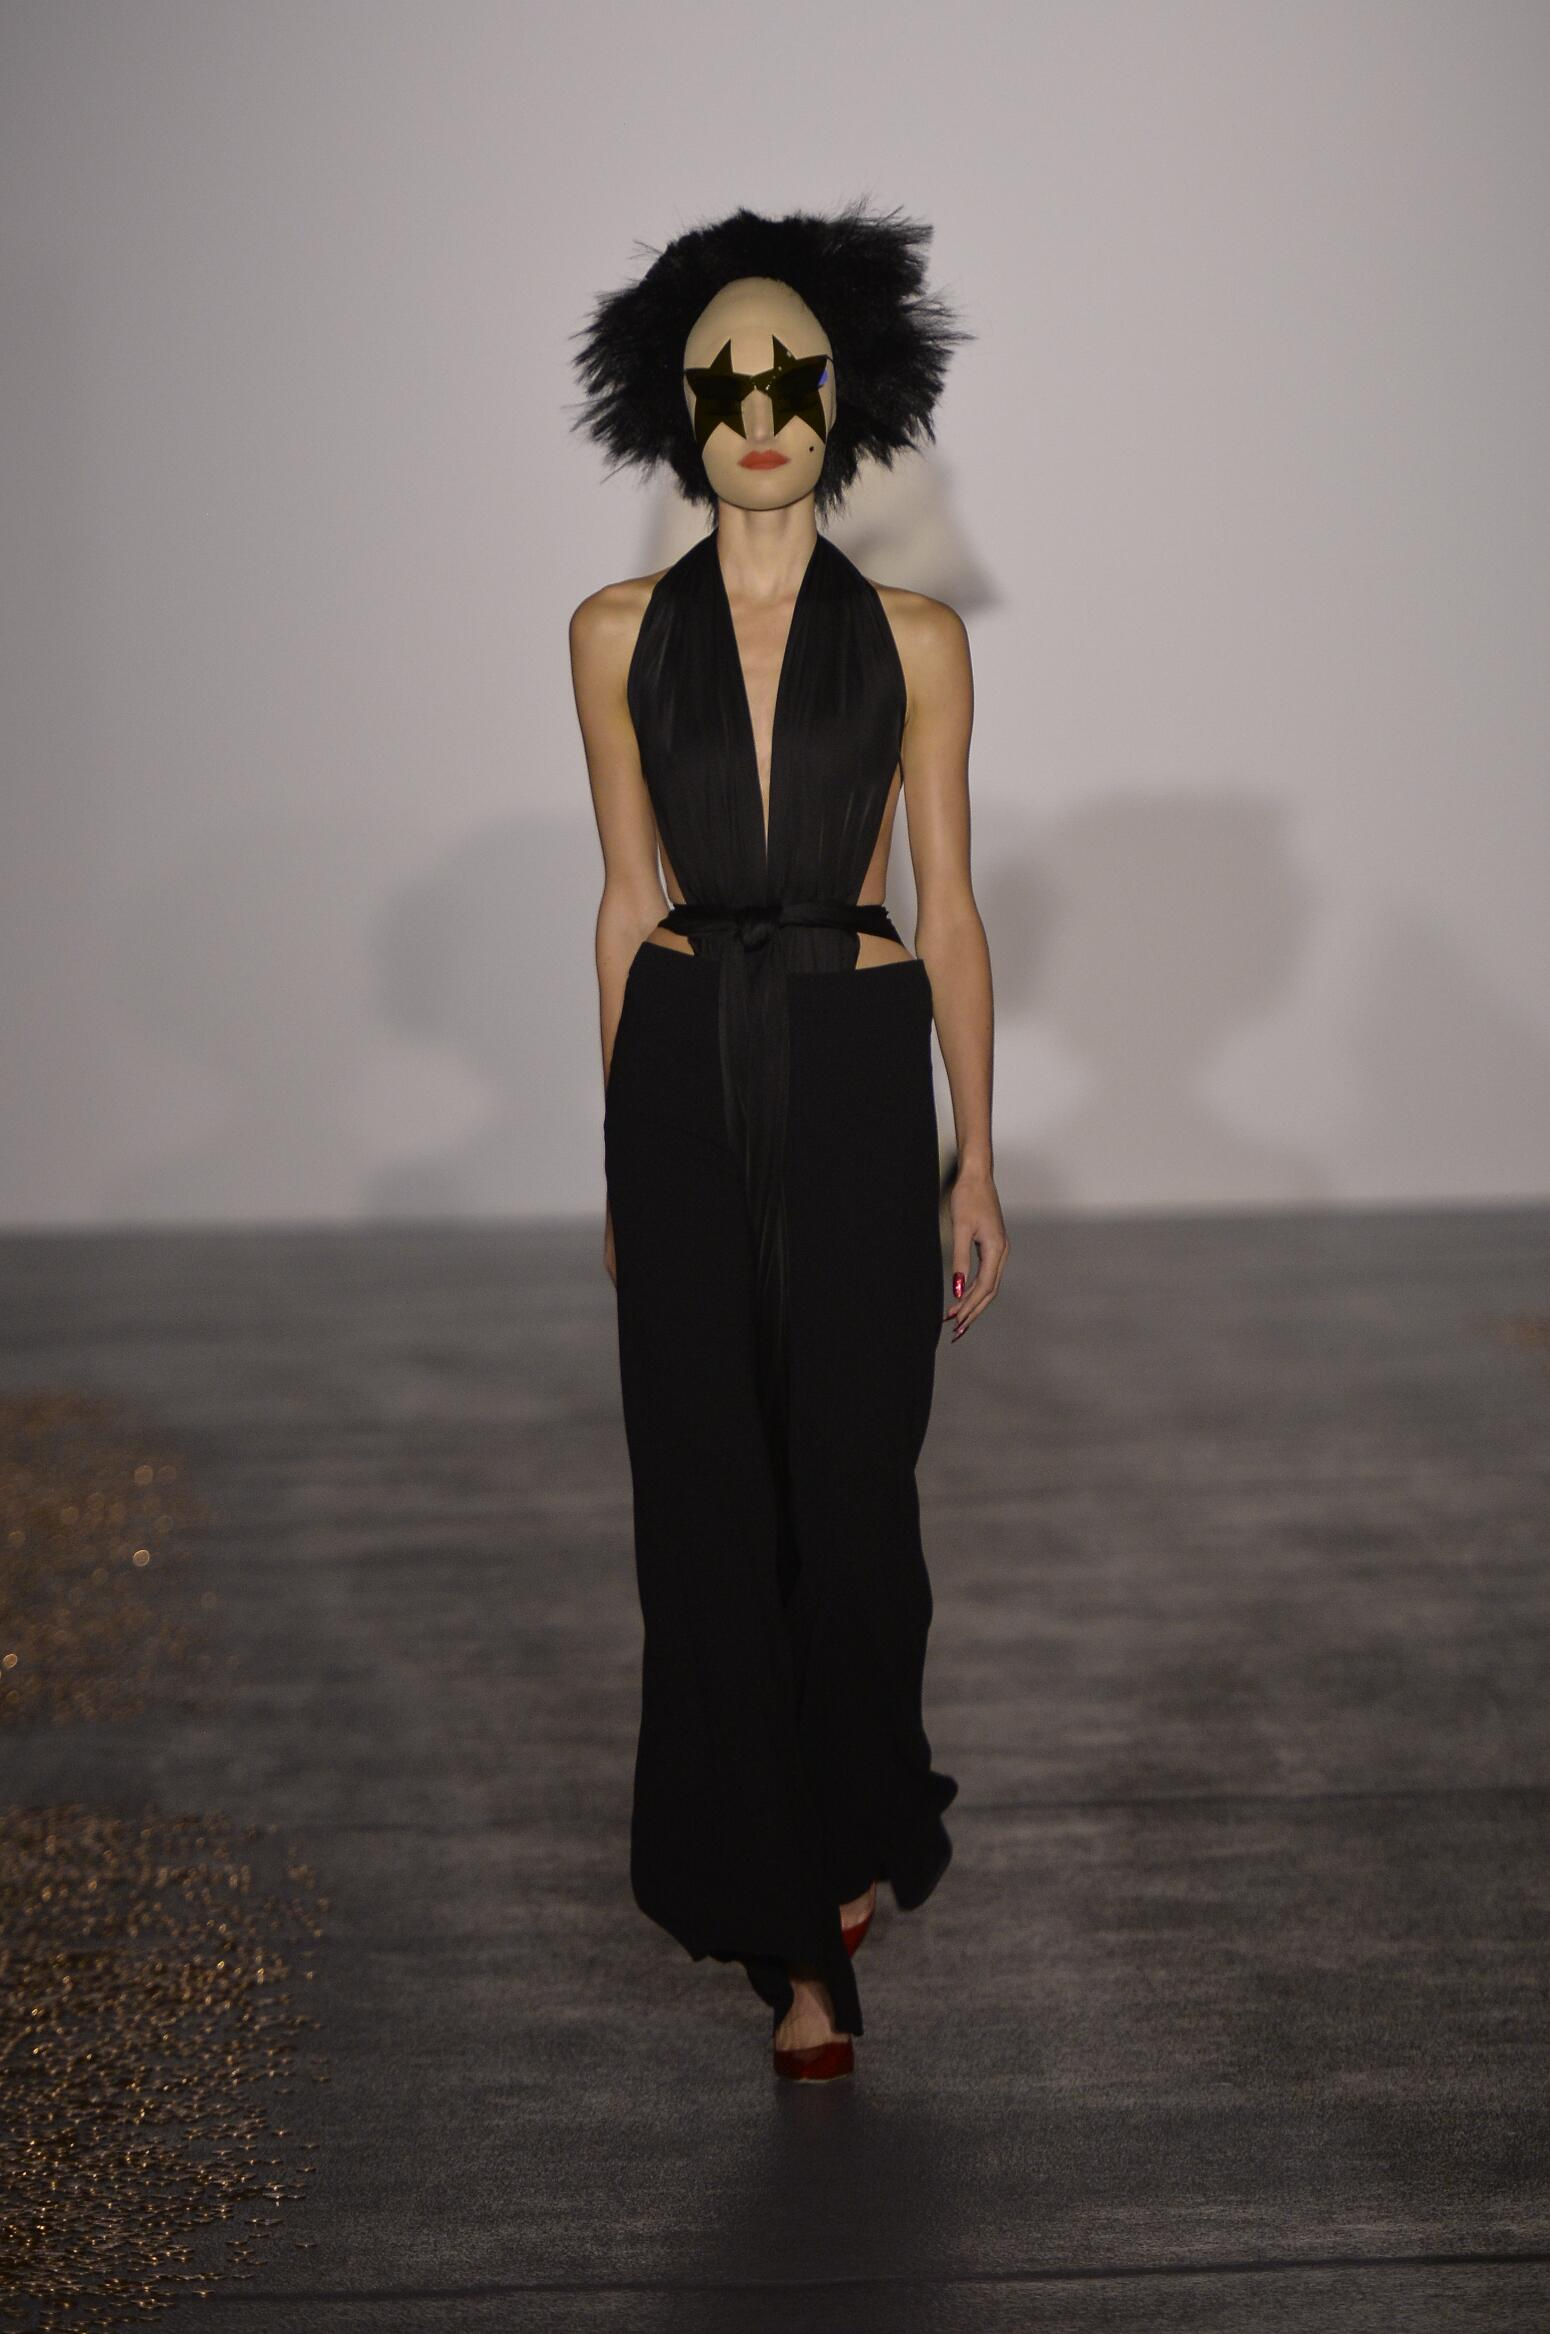 2016 Fashion Woman Model Gareth Pugh Collection Catwalk